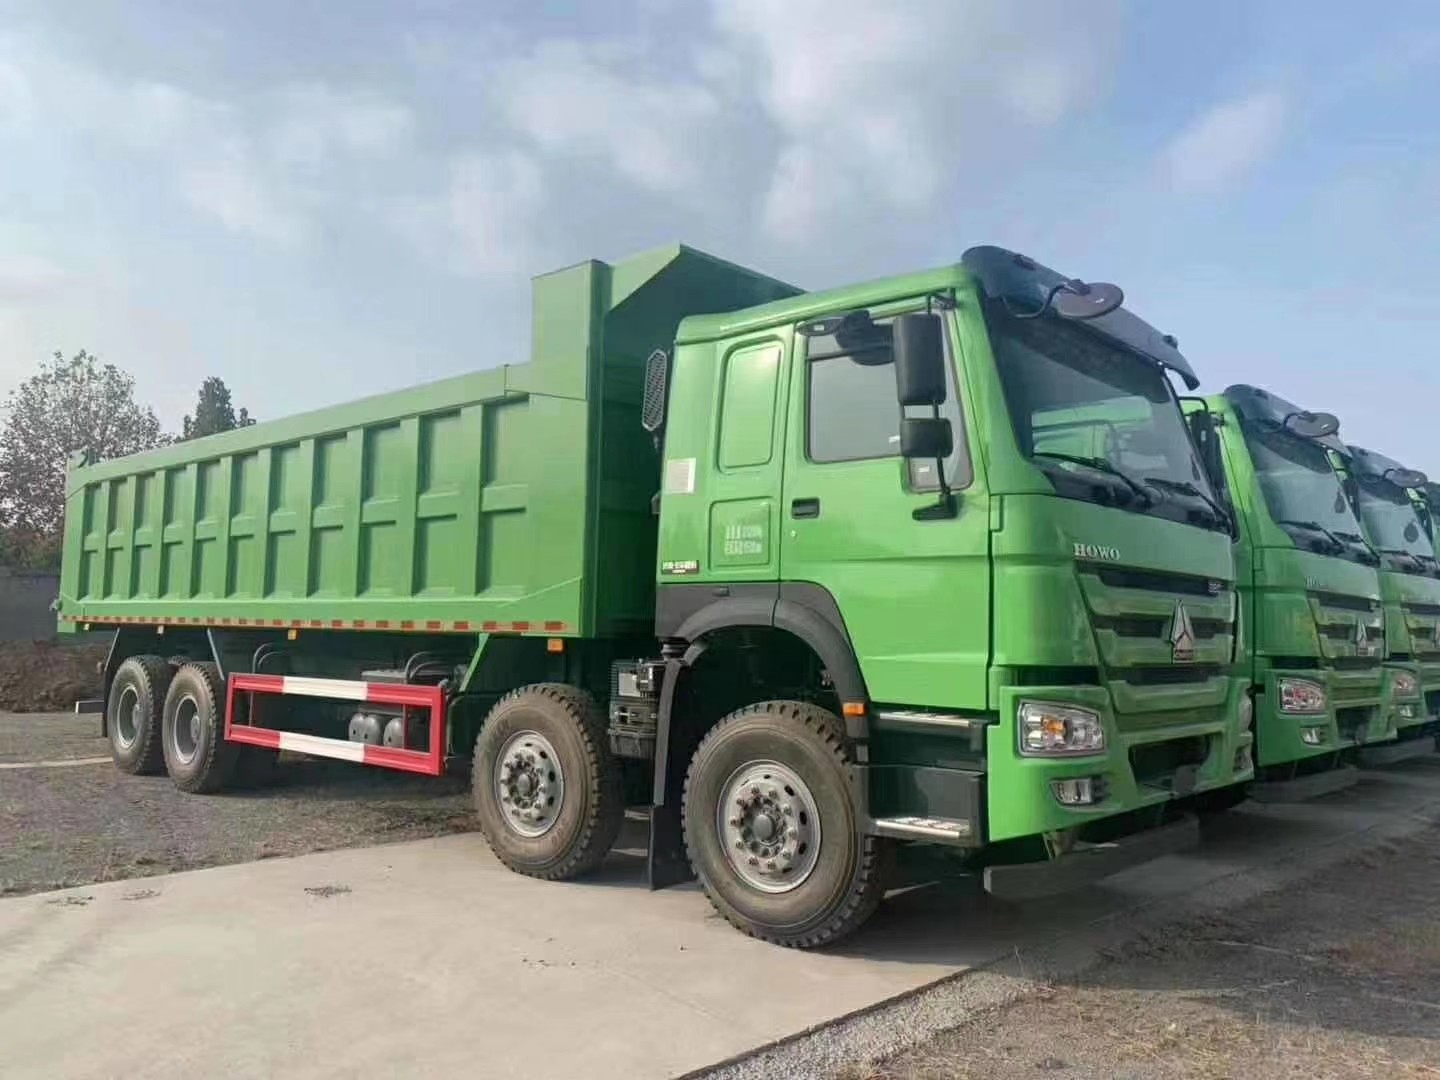 Heavy Duty Sinotruk Howo 7 12 Wheeler Dump Truck With Euro 2 Engine And ZF8118 Steering